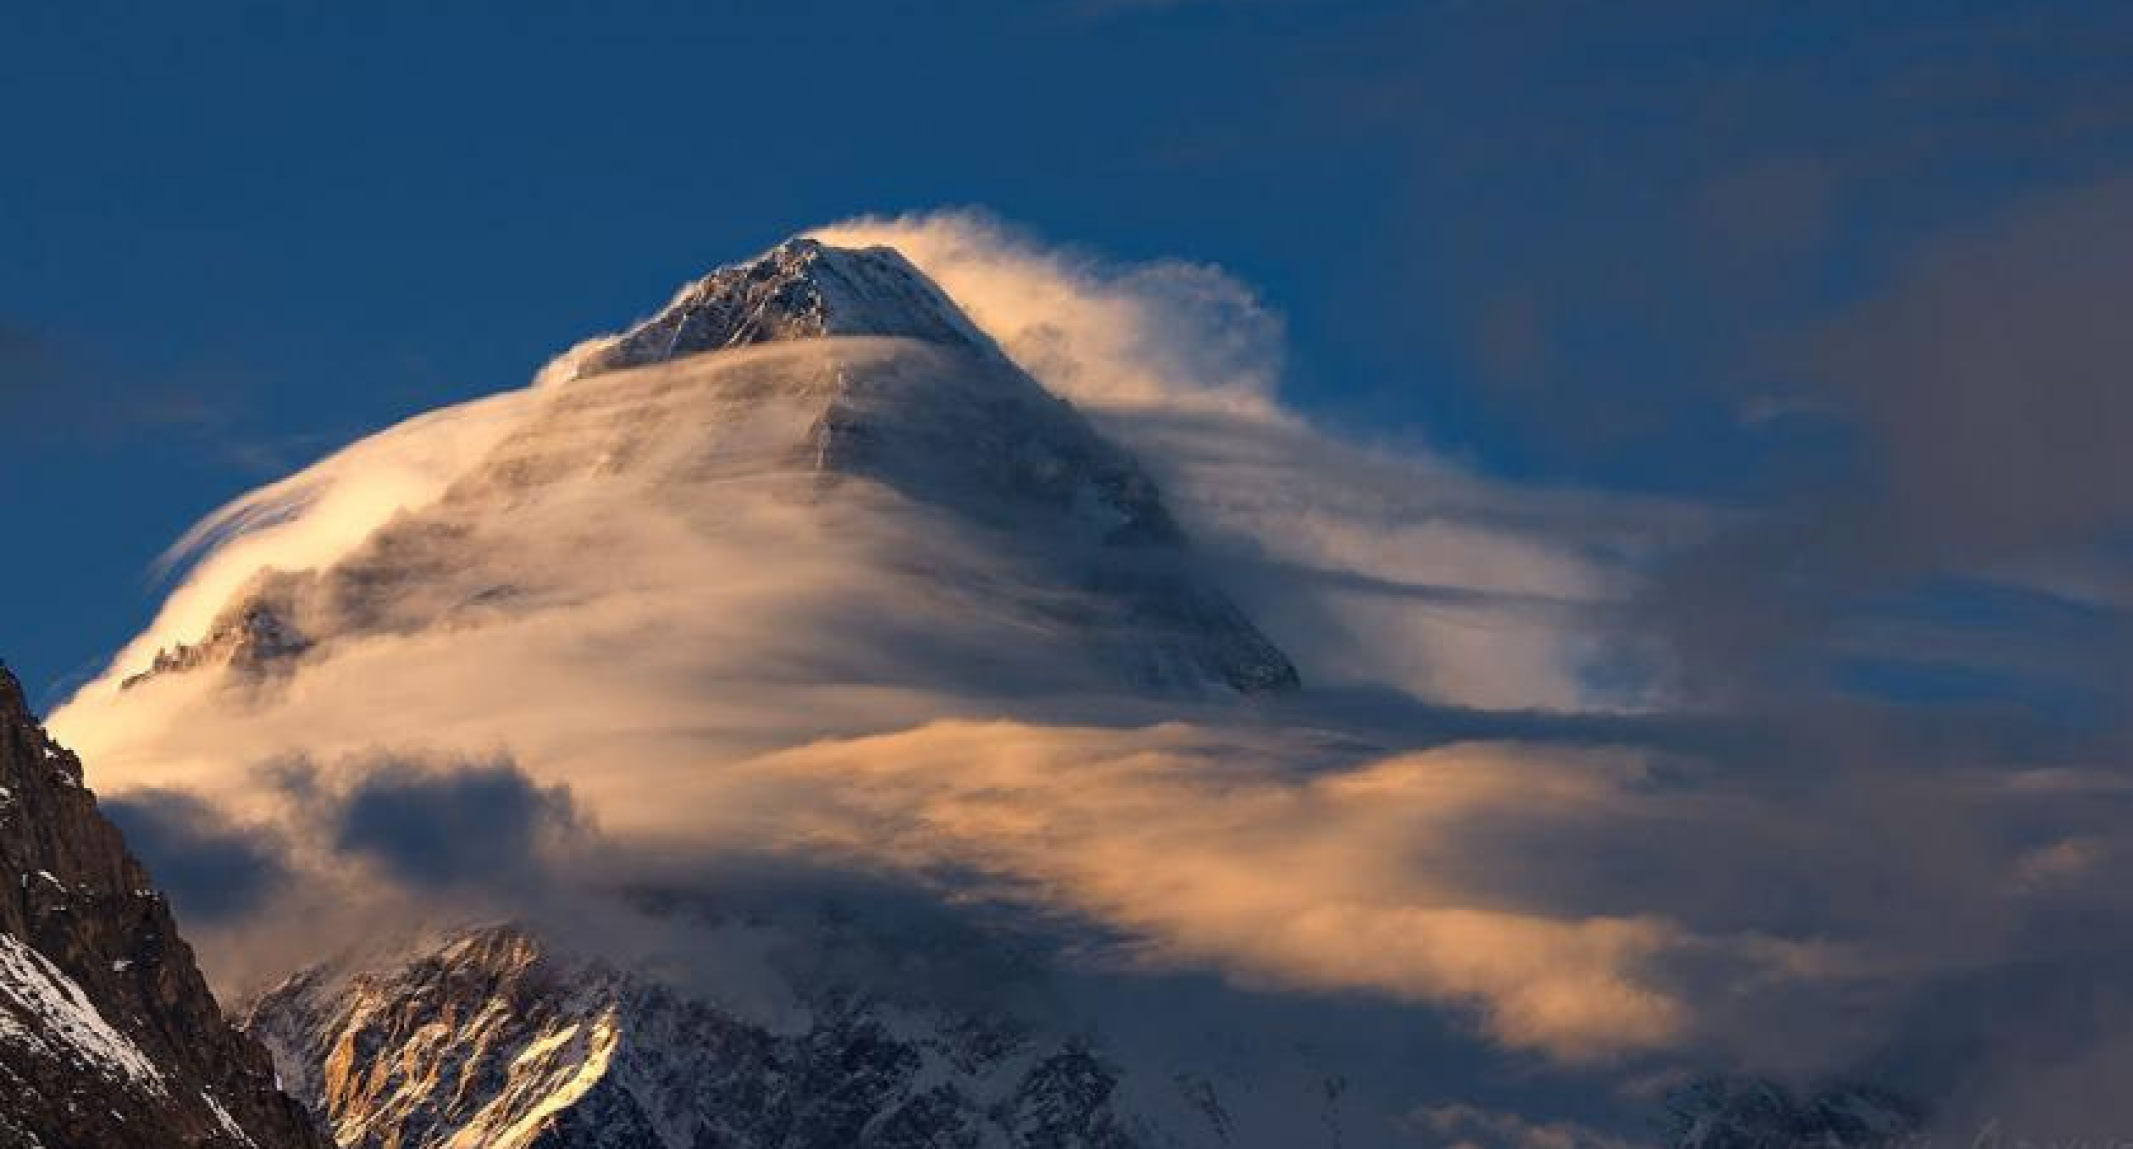 The Quest for the First Winter Ascent of K2 - Secret Compass